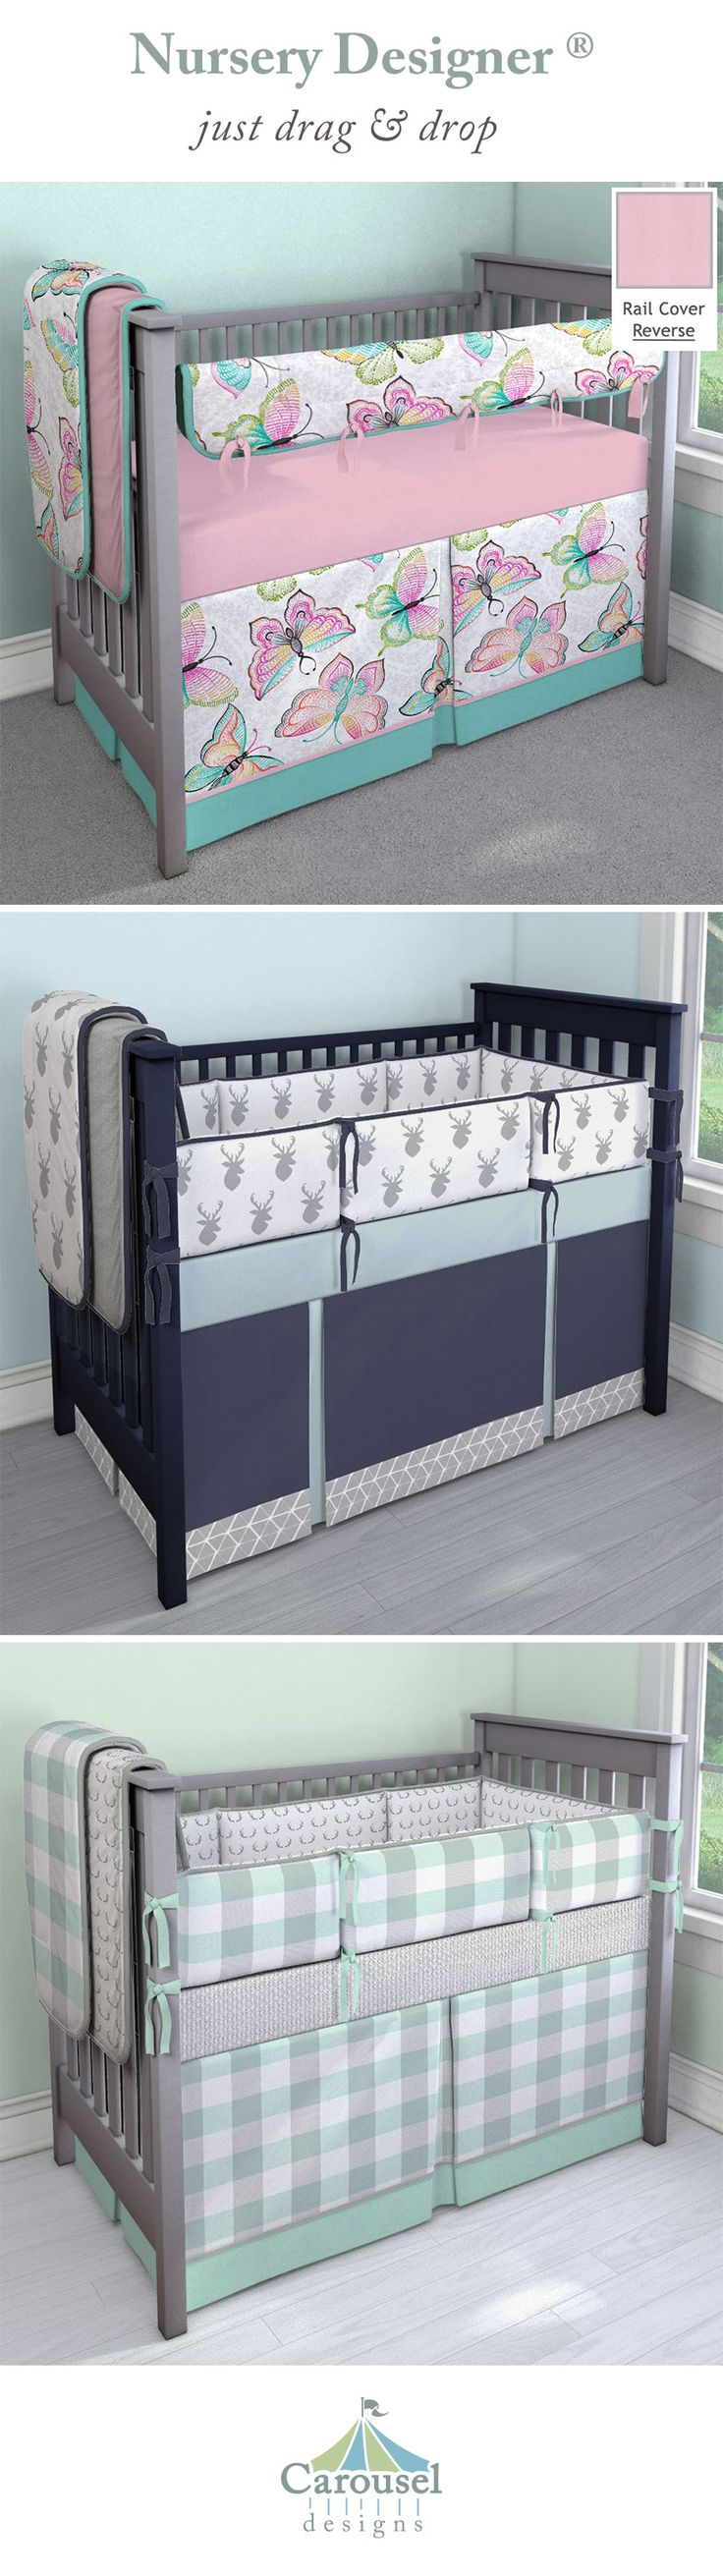 Special enclosed crib for premature babies - Carousel Designs Designs Can Help Make Your Nursery Unique And Extra Special With Custom Crib Bedding